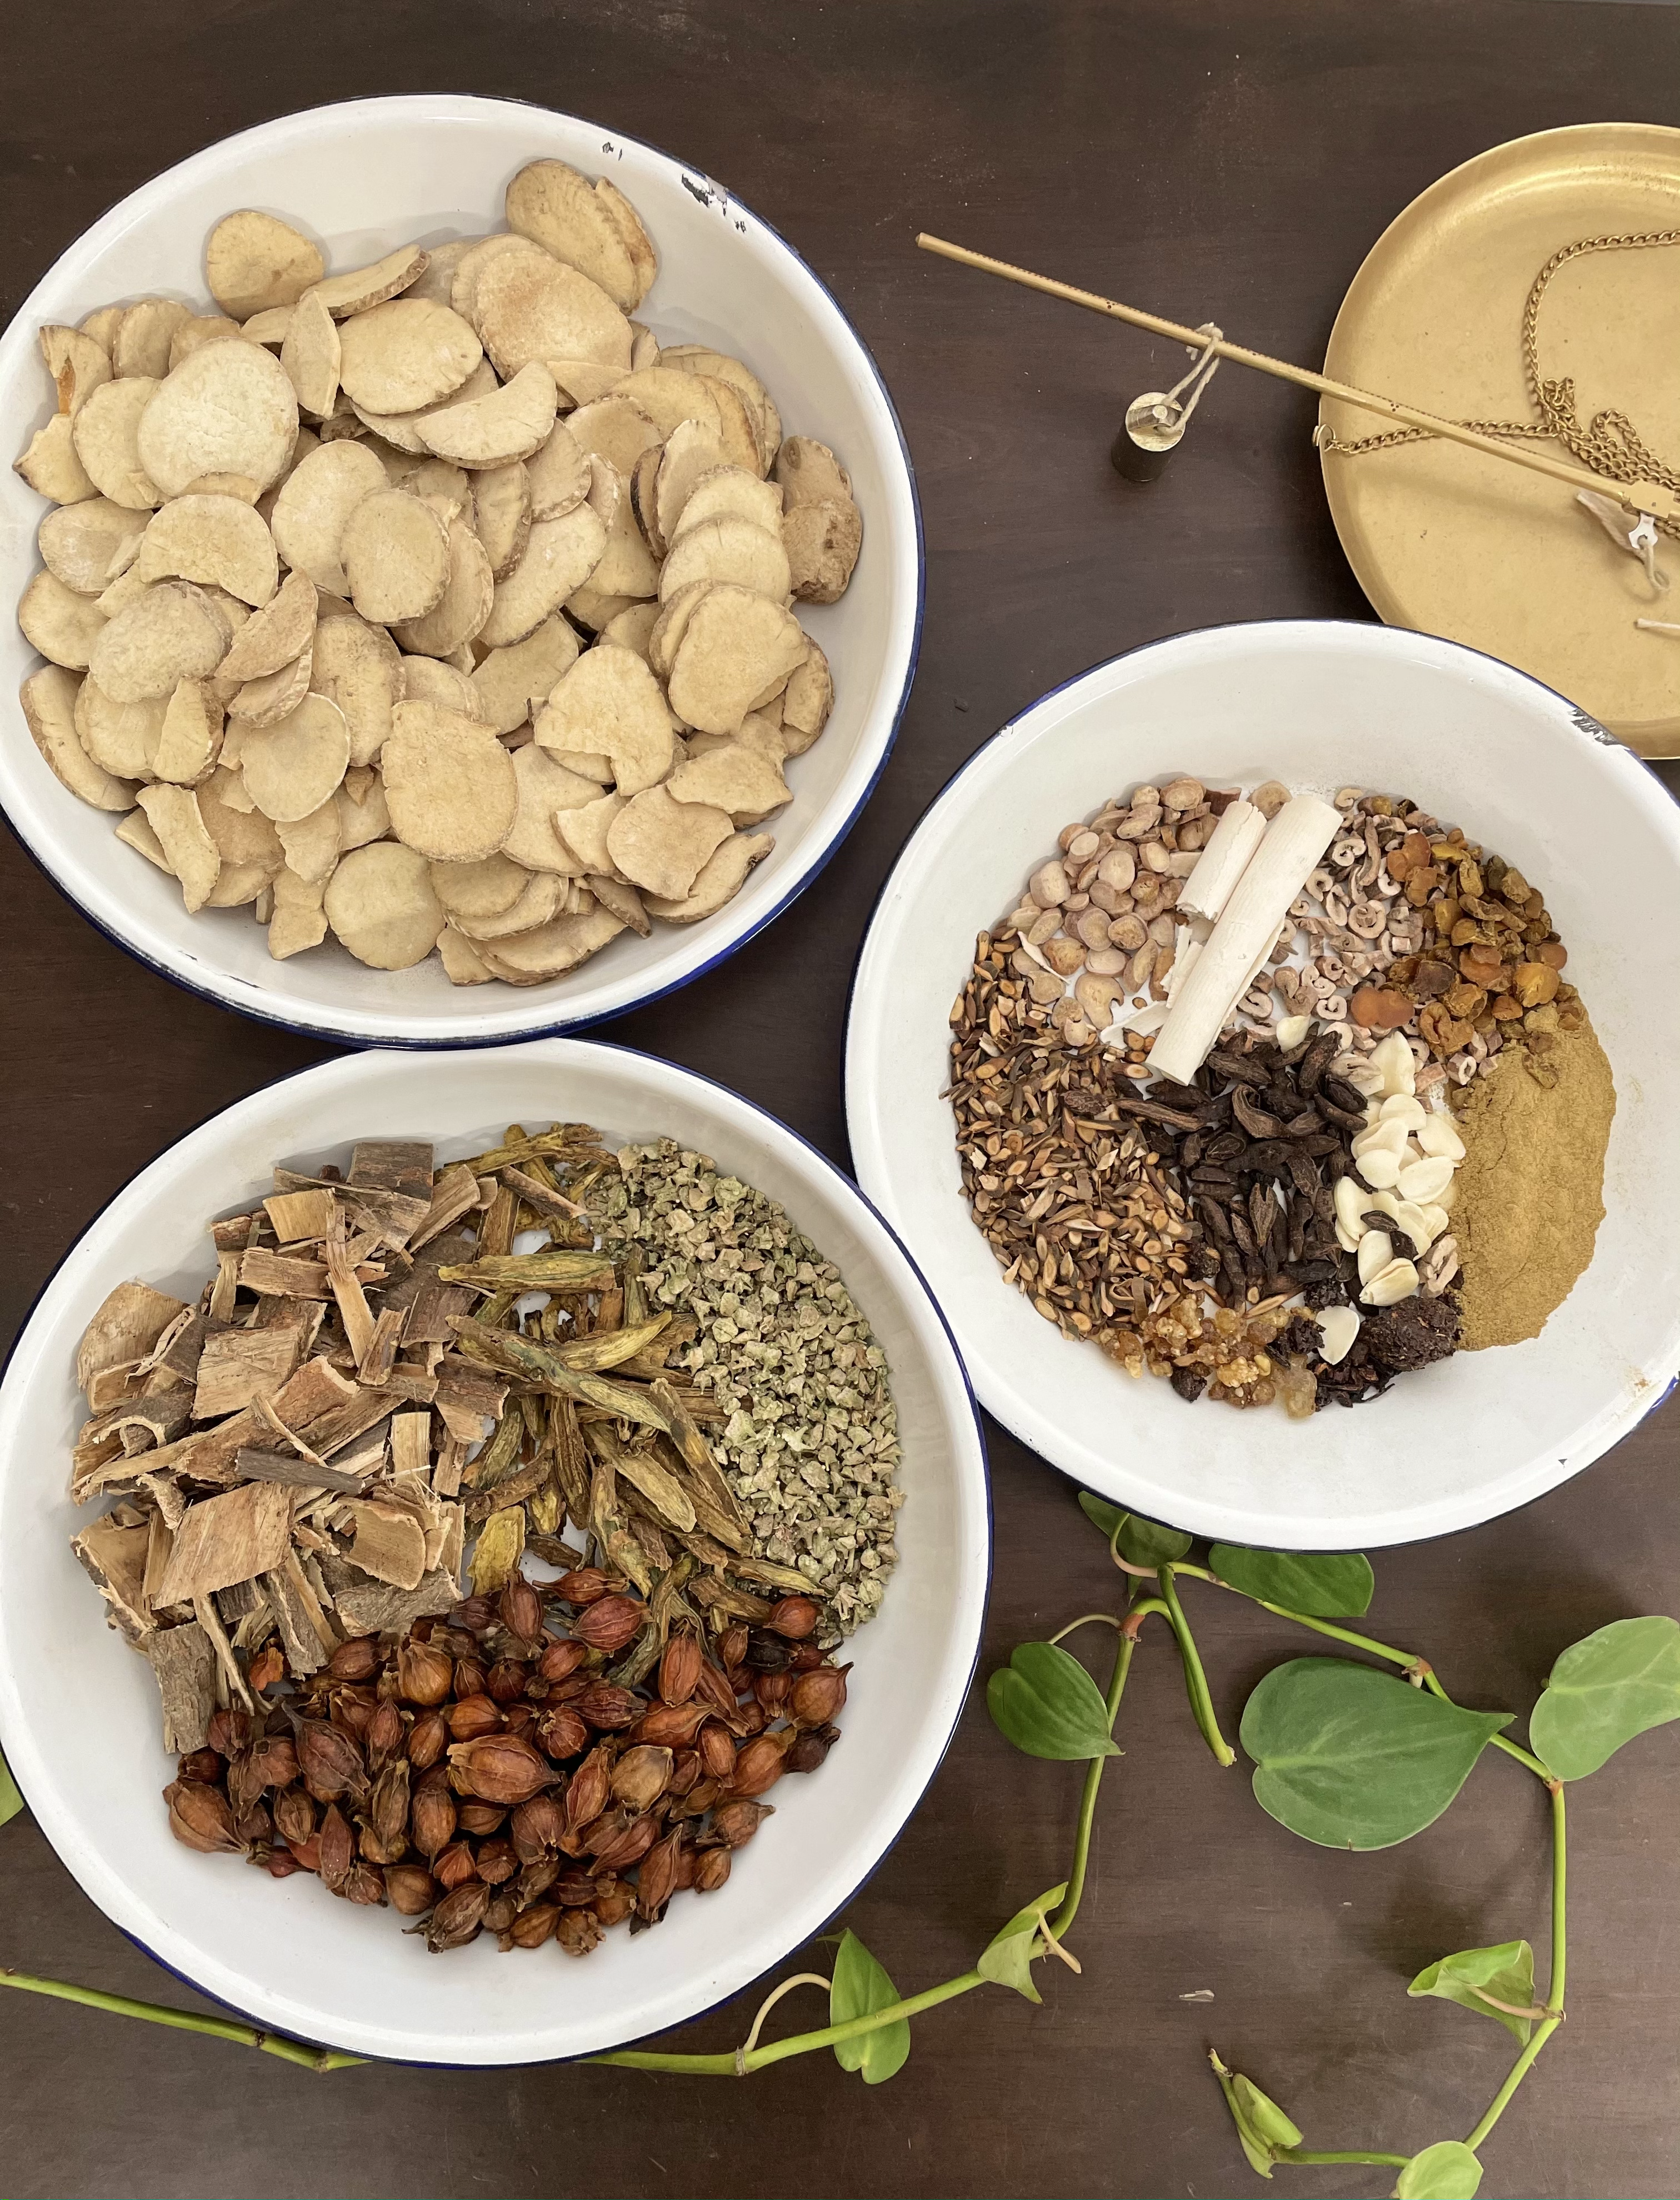 Follow up Herbal Consultation